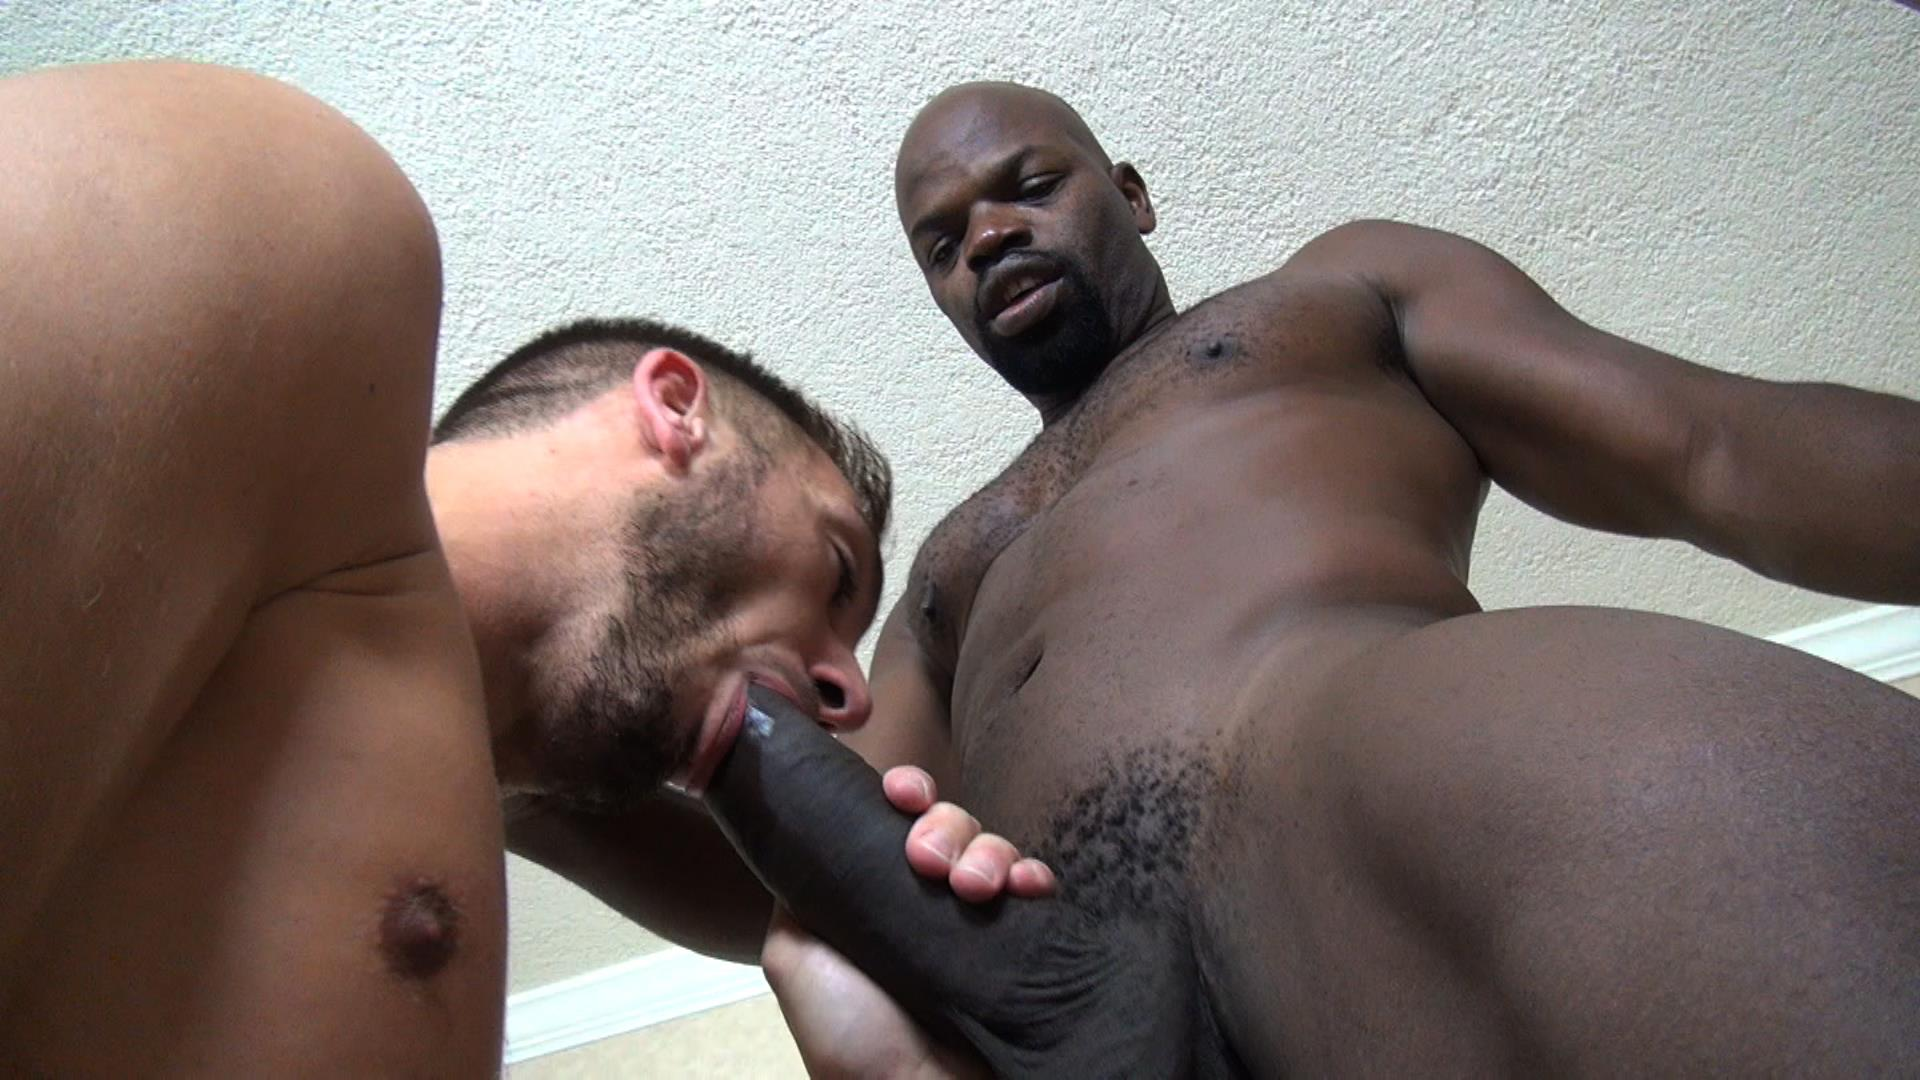 Raw Fuck Club Adam Russo and Cutler X and Dylan Strokes Interracial Bareback Big Black Cock Amateur Gay Porn 1 Interracial Boyfriends Adam Russo and Cutler X Barebacking Dylan Strokes